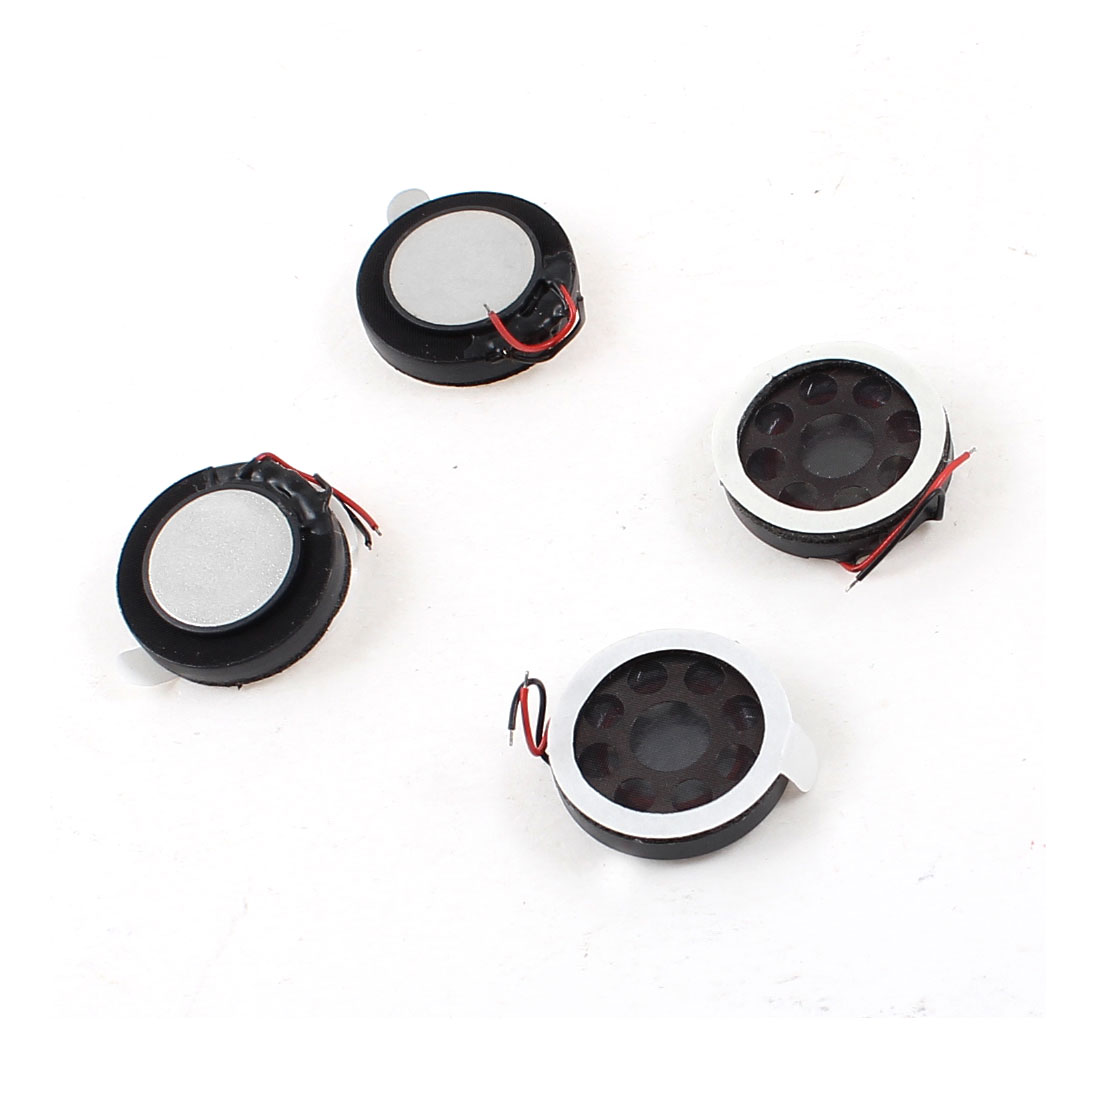 4 Pcs 1W 8 Ohm Wired 18mm Dia Round Magnet Speaker Amplifier Loudspeaker